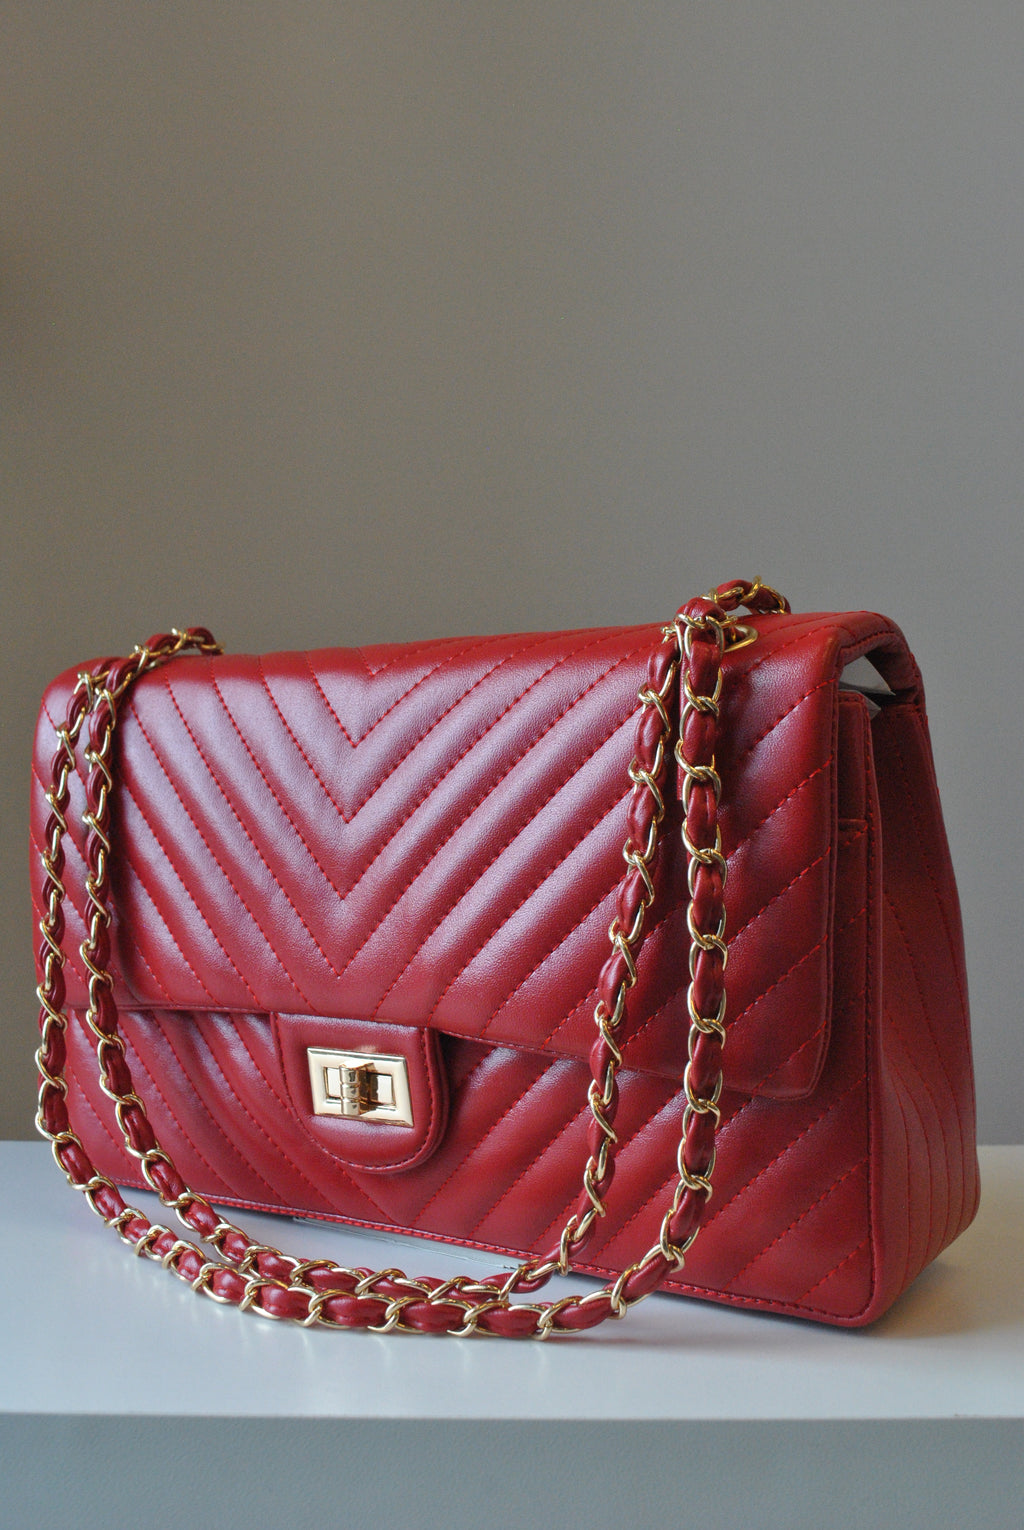 BIG RED GUILTED SHOULDER BAG WITH GOLD CHAIN